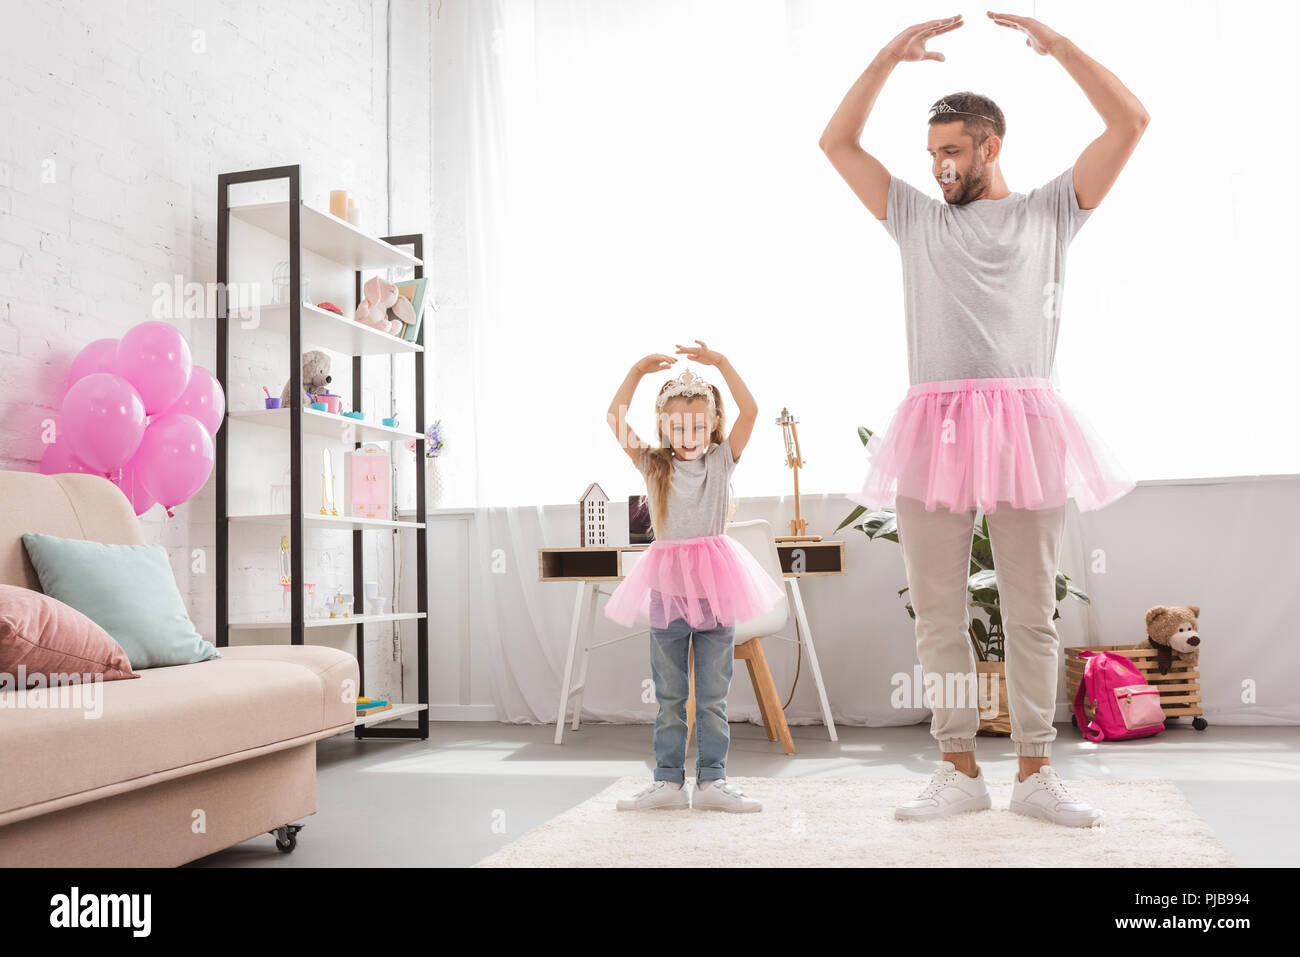 father and daughter in pink tutu skirts dancing like ballerinas - Stock Image